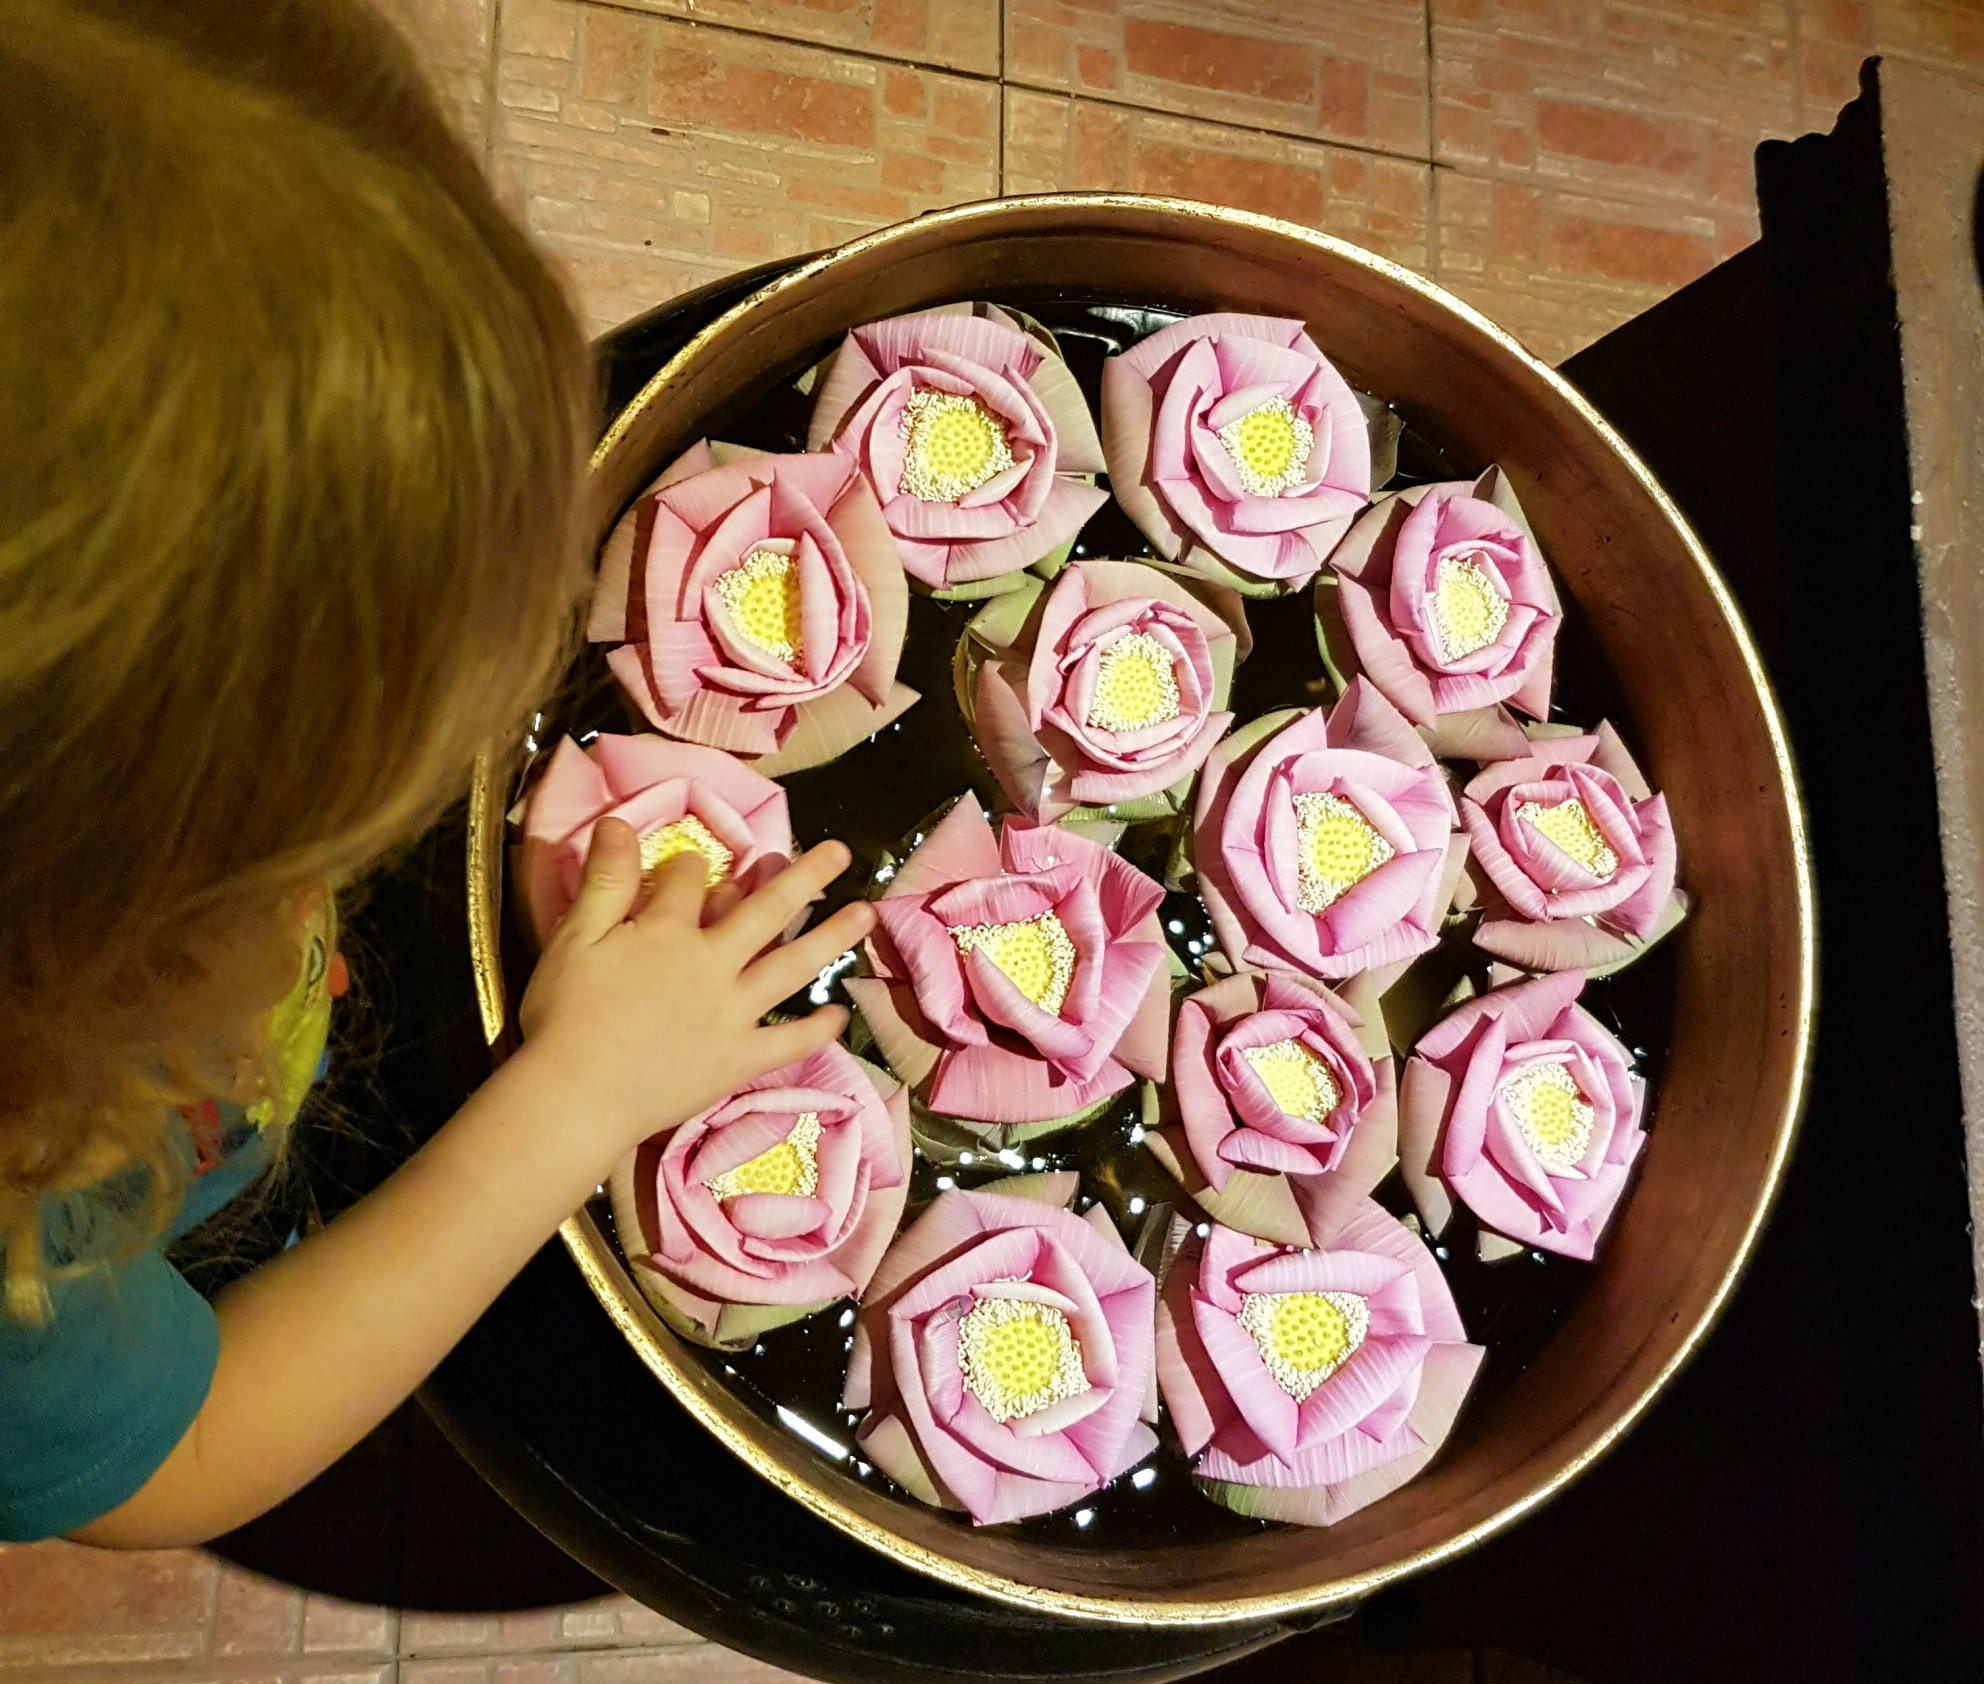 My daughter reaches to touch pink flowers floating in a bowl - 12 reasons to visit Cambodia with kids